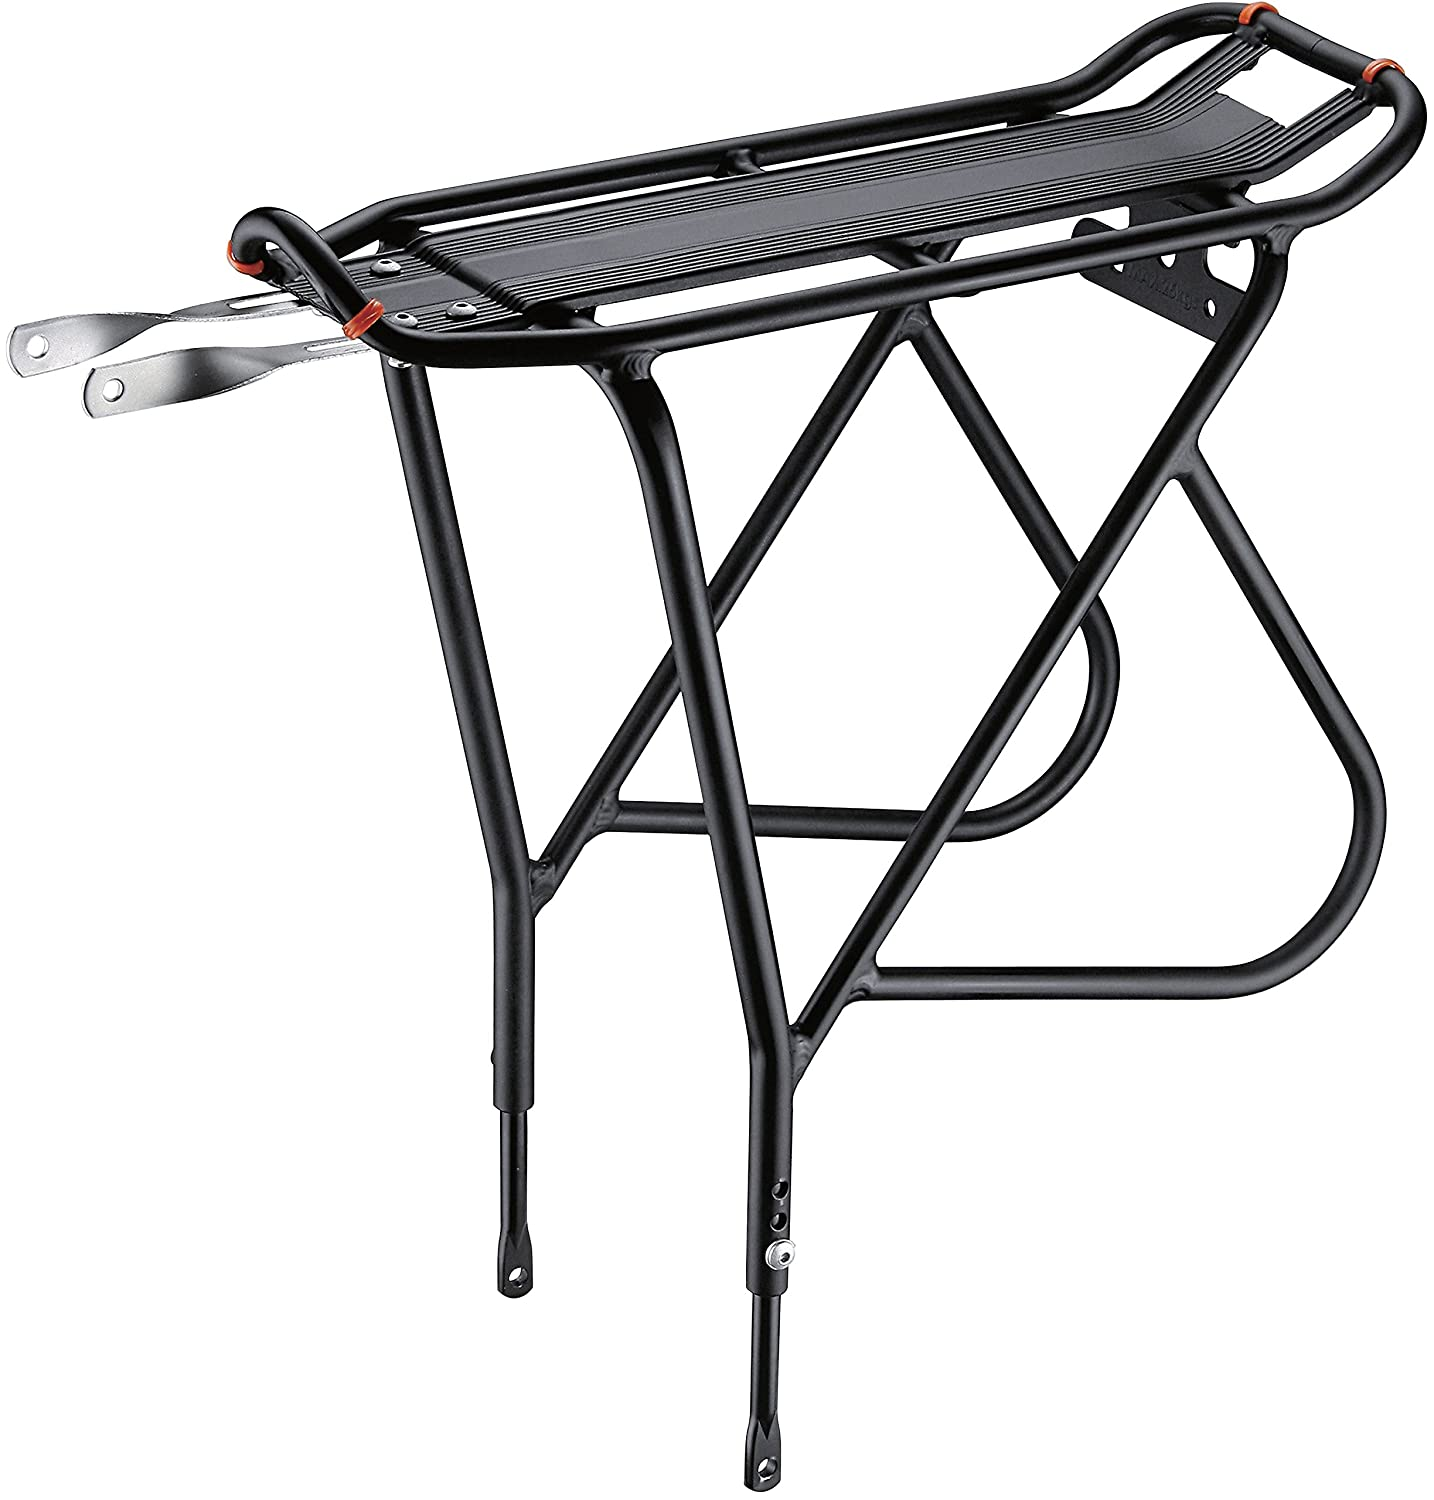 Associated product image for Ibera PakRak Bicycle Touring Carrier Plus, Frame-Mounted for Heavier Top and Side Loads, Height Adjustable, Fender Board, Black